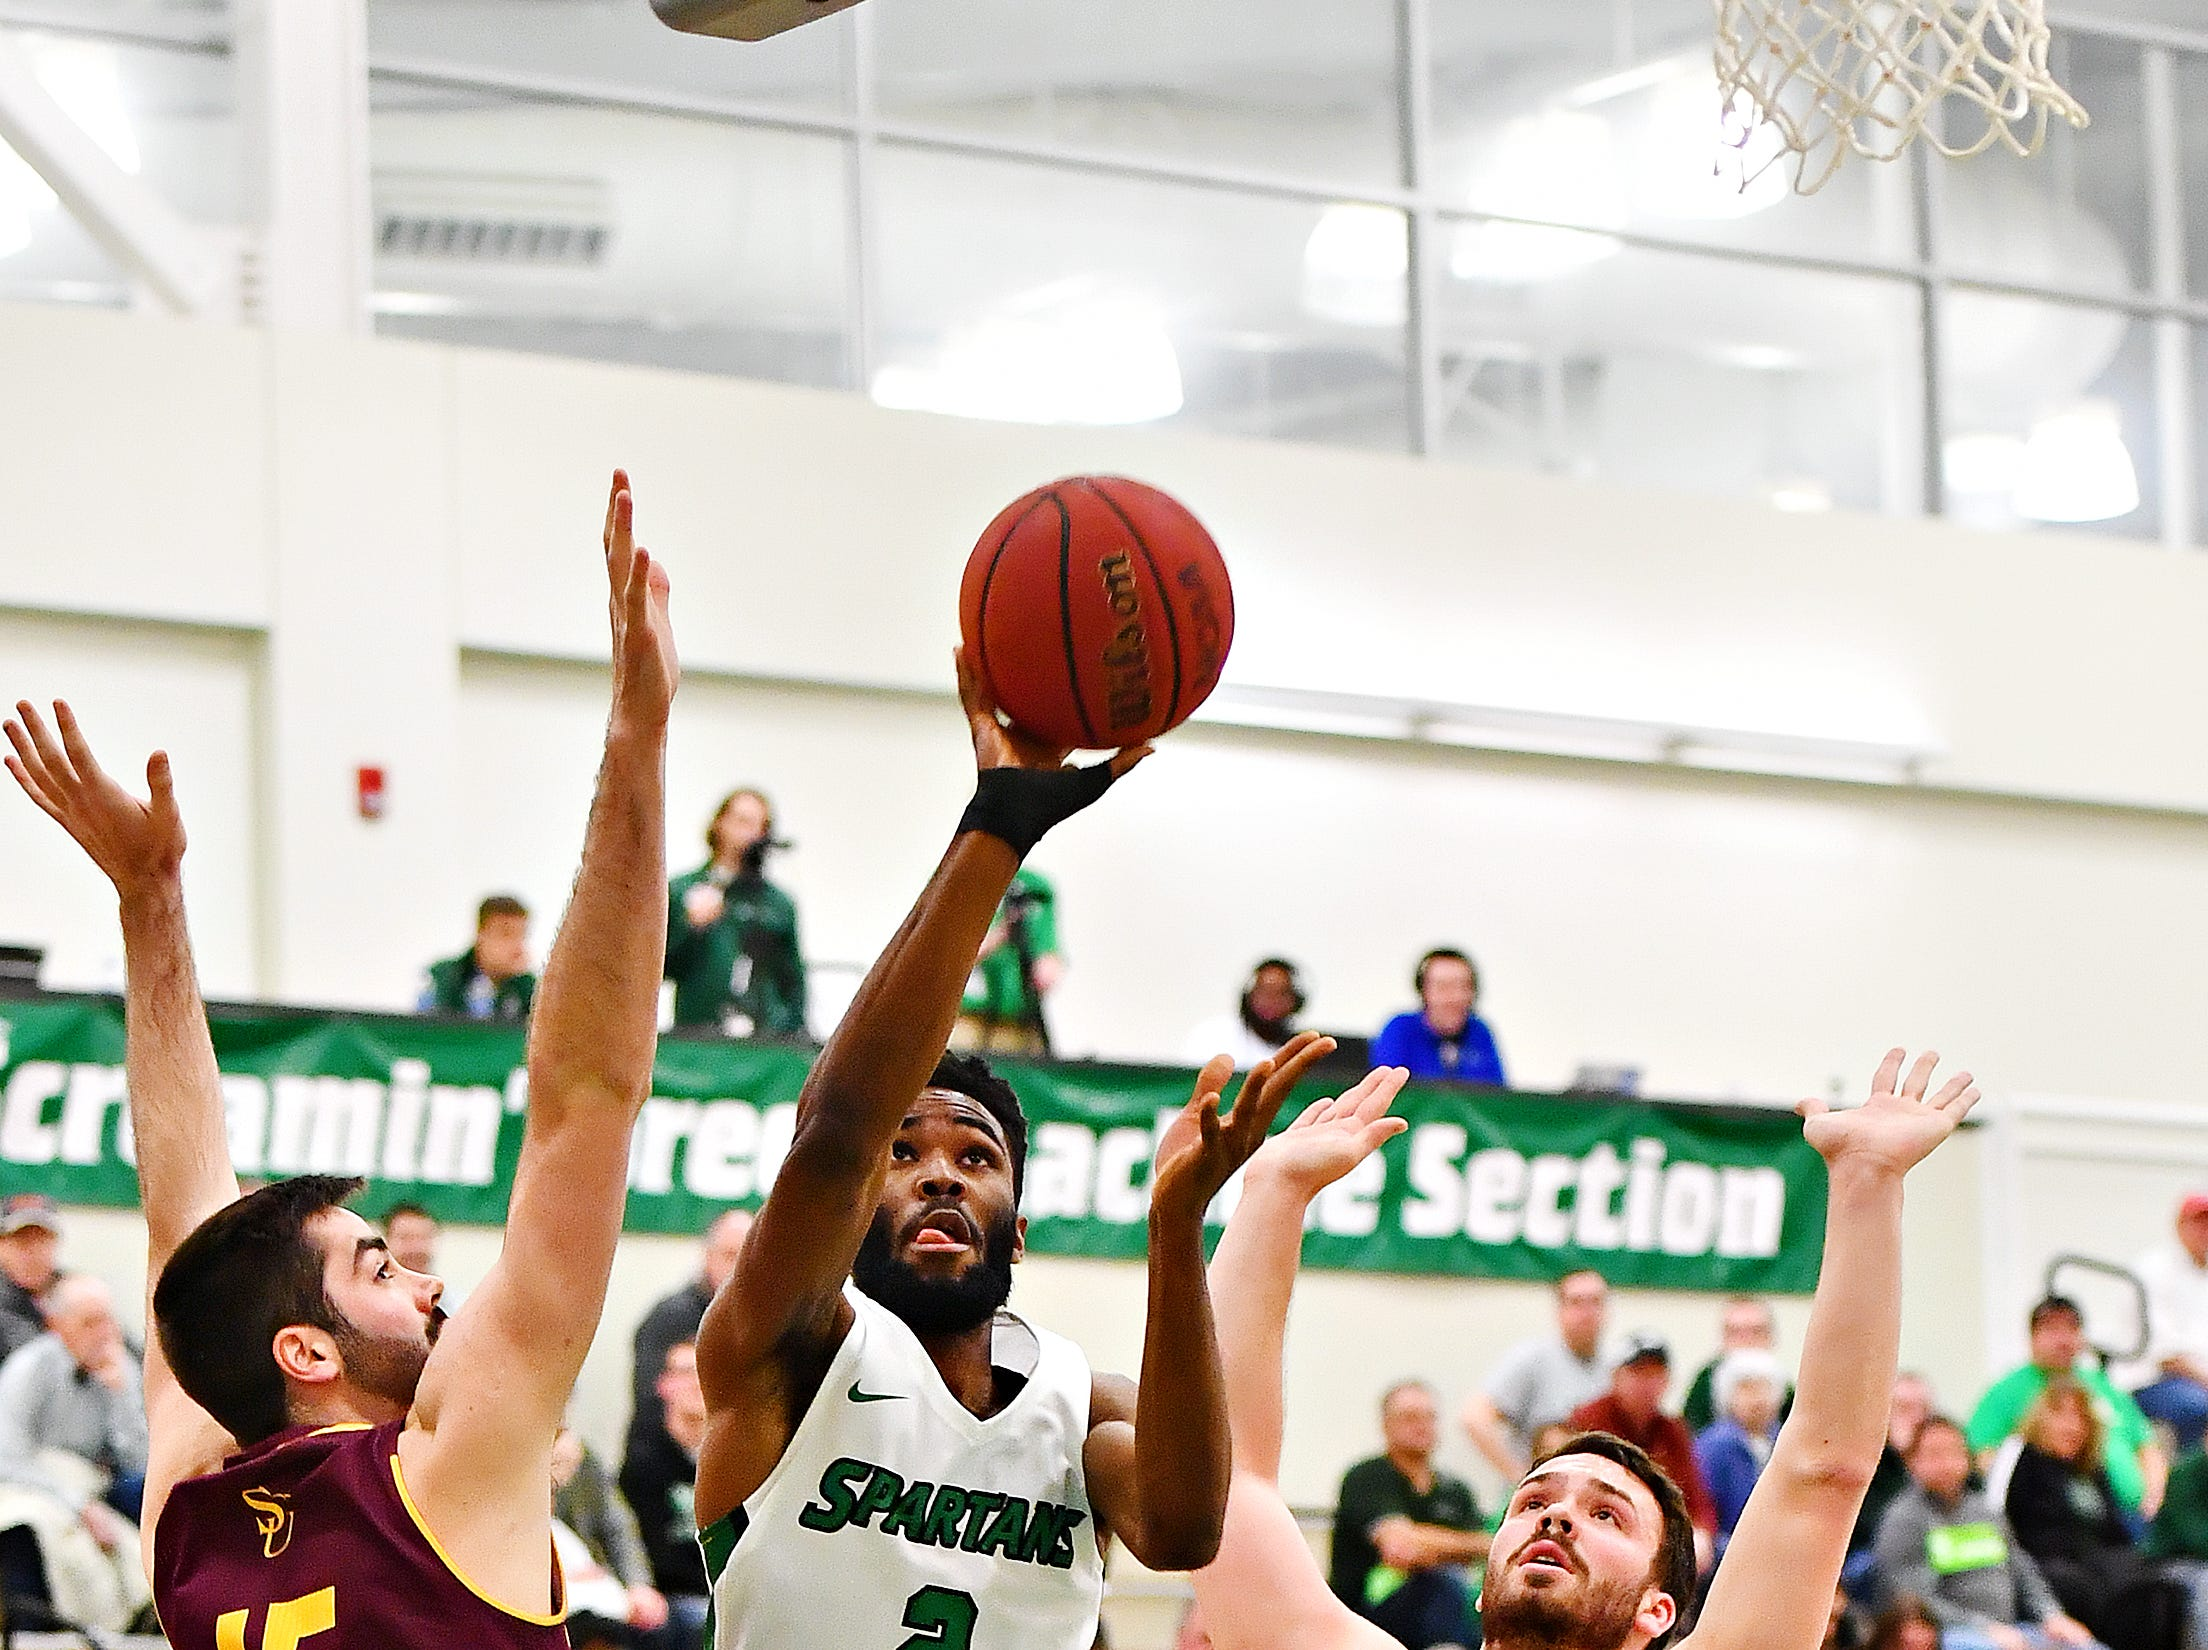 York College's Jason Bady, center, takes the ball to the basket while Salisbury's James Foley, left, and Chase Kumor defend during men's basketball action at Grumbacher Sport and Fitness Center at York College of Pennsylvania in Spring Garden Township, Wednesday, Feb. 6, 2019. Dawn J. Sagert photo